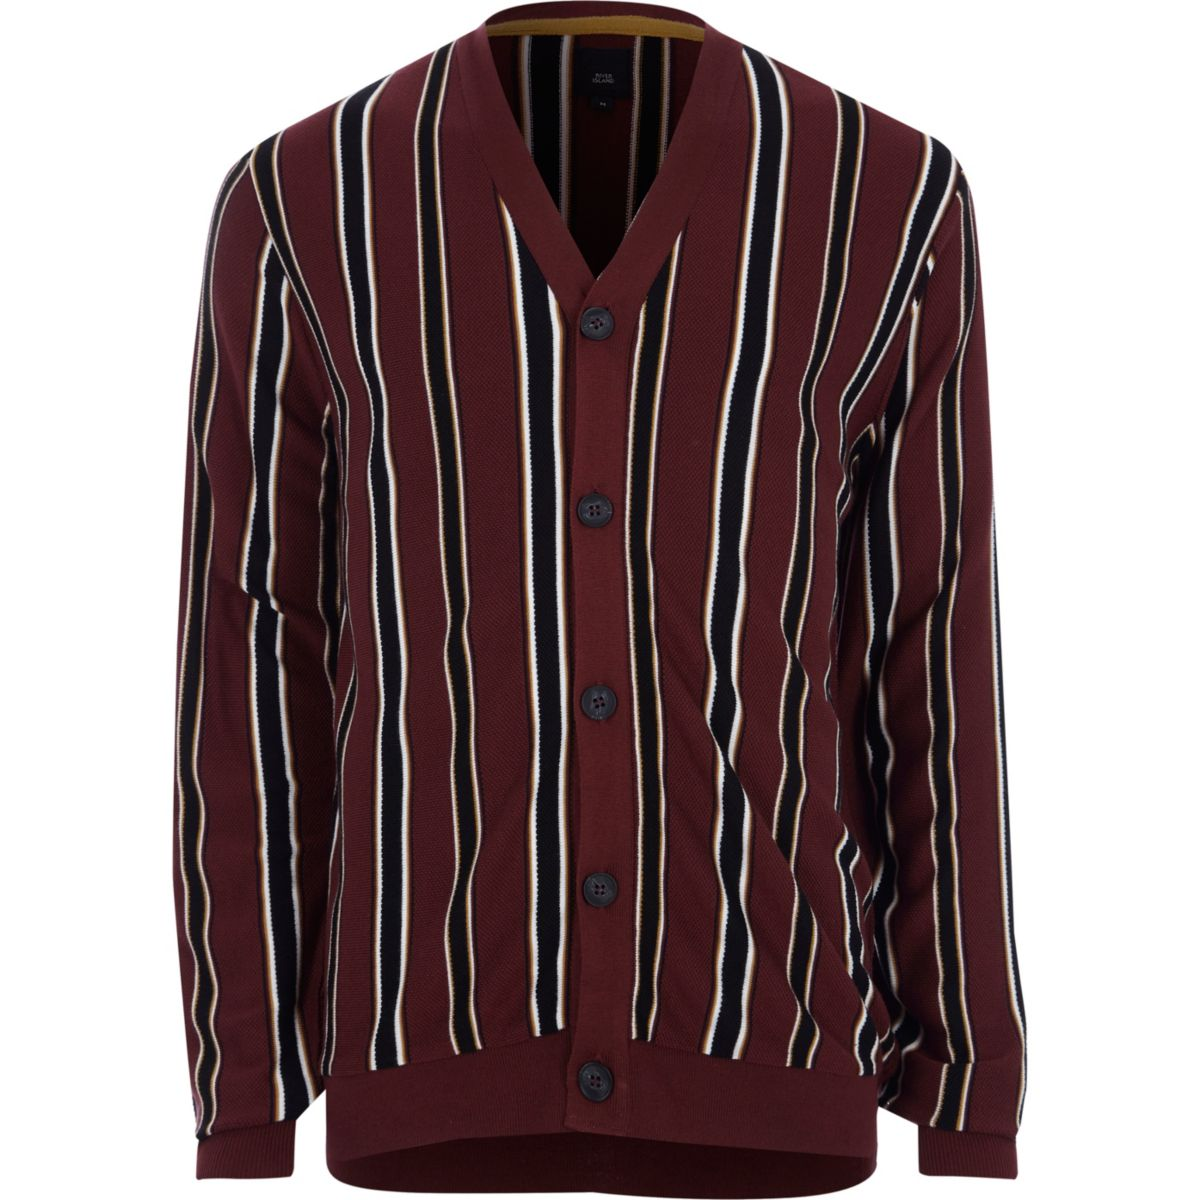 Burgundy stripe knit cardigan